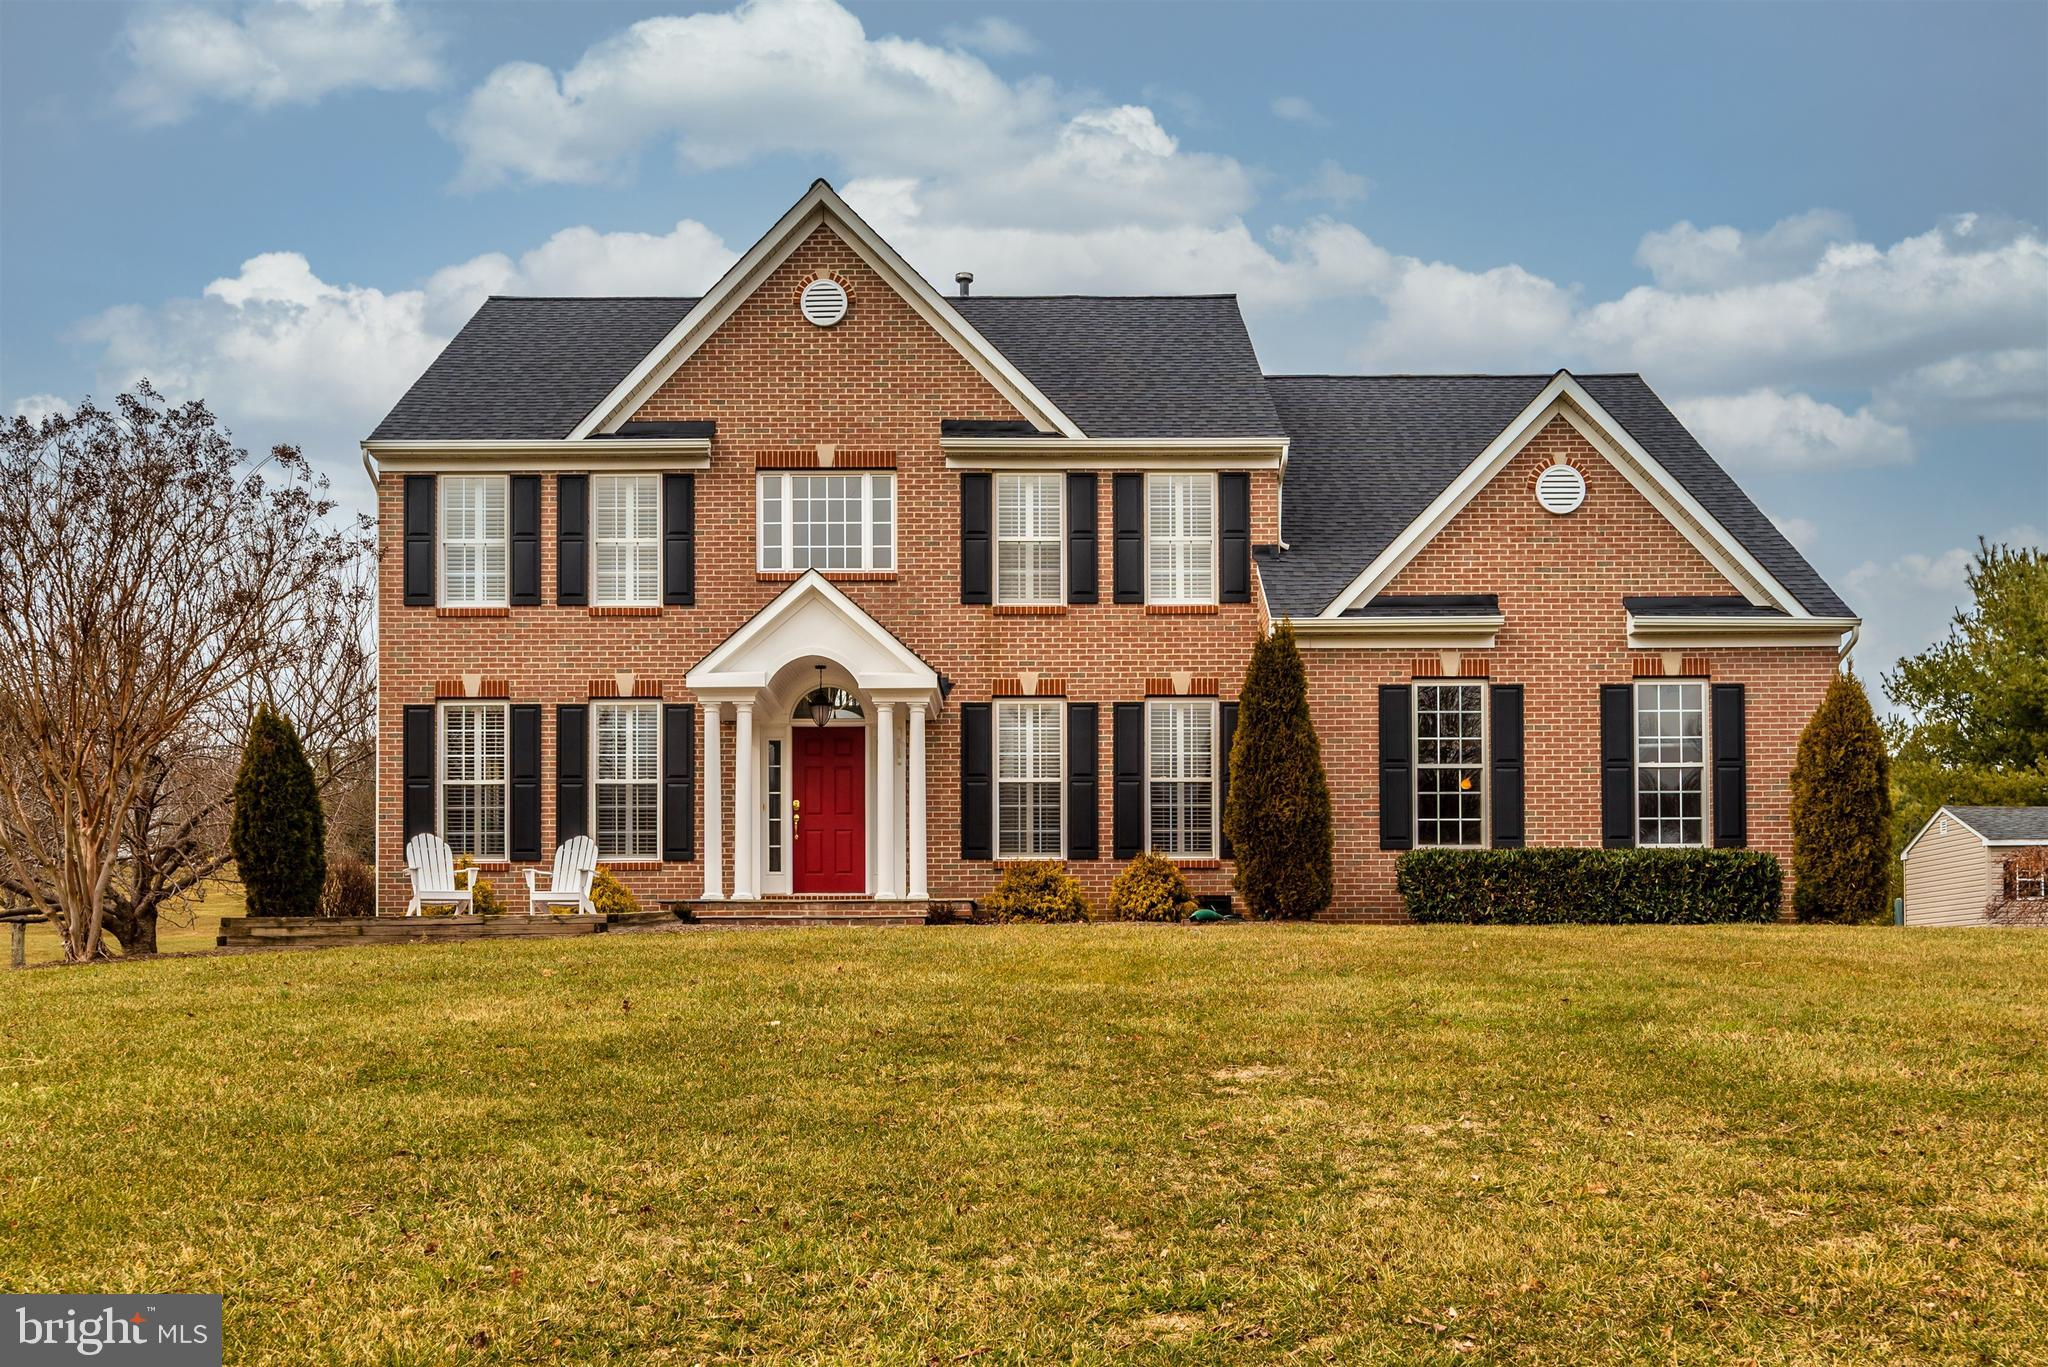 6565 CHALLEDON CIRCLE, MOUNT AIRY, MD 21771